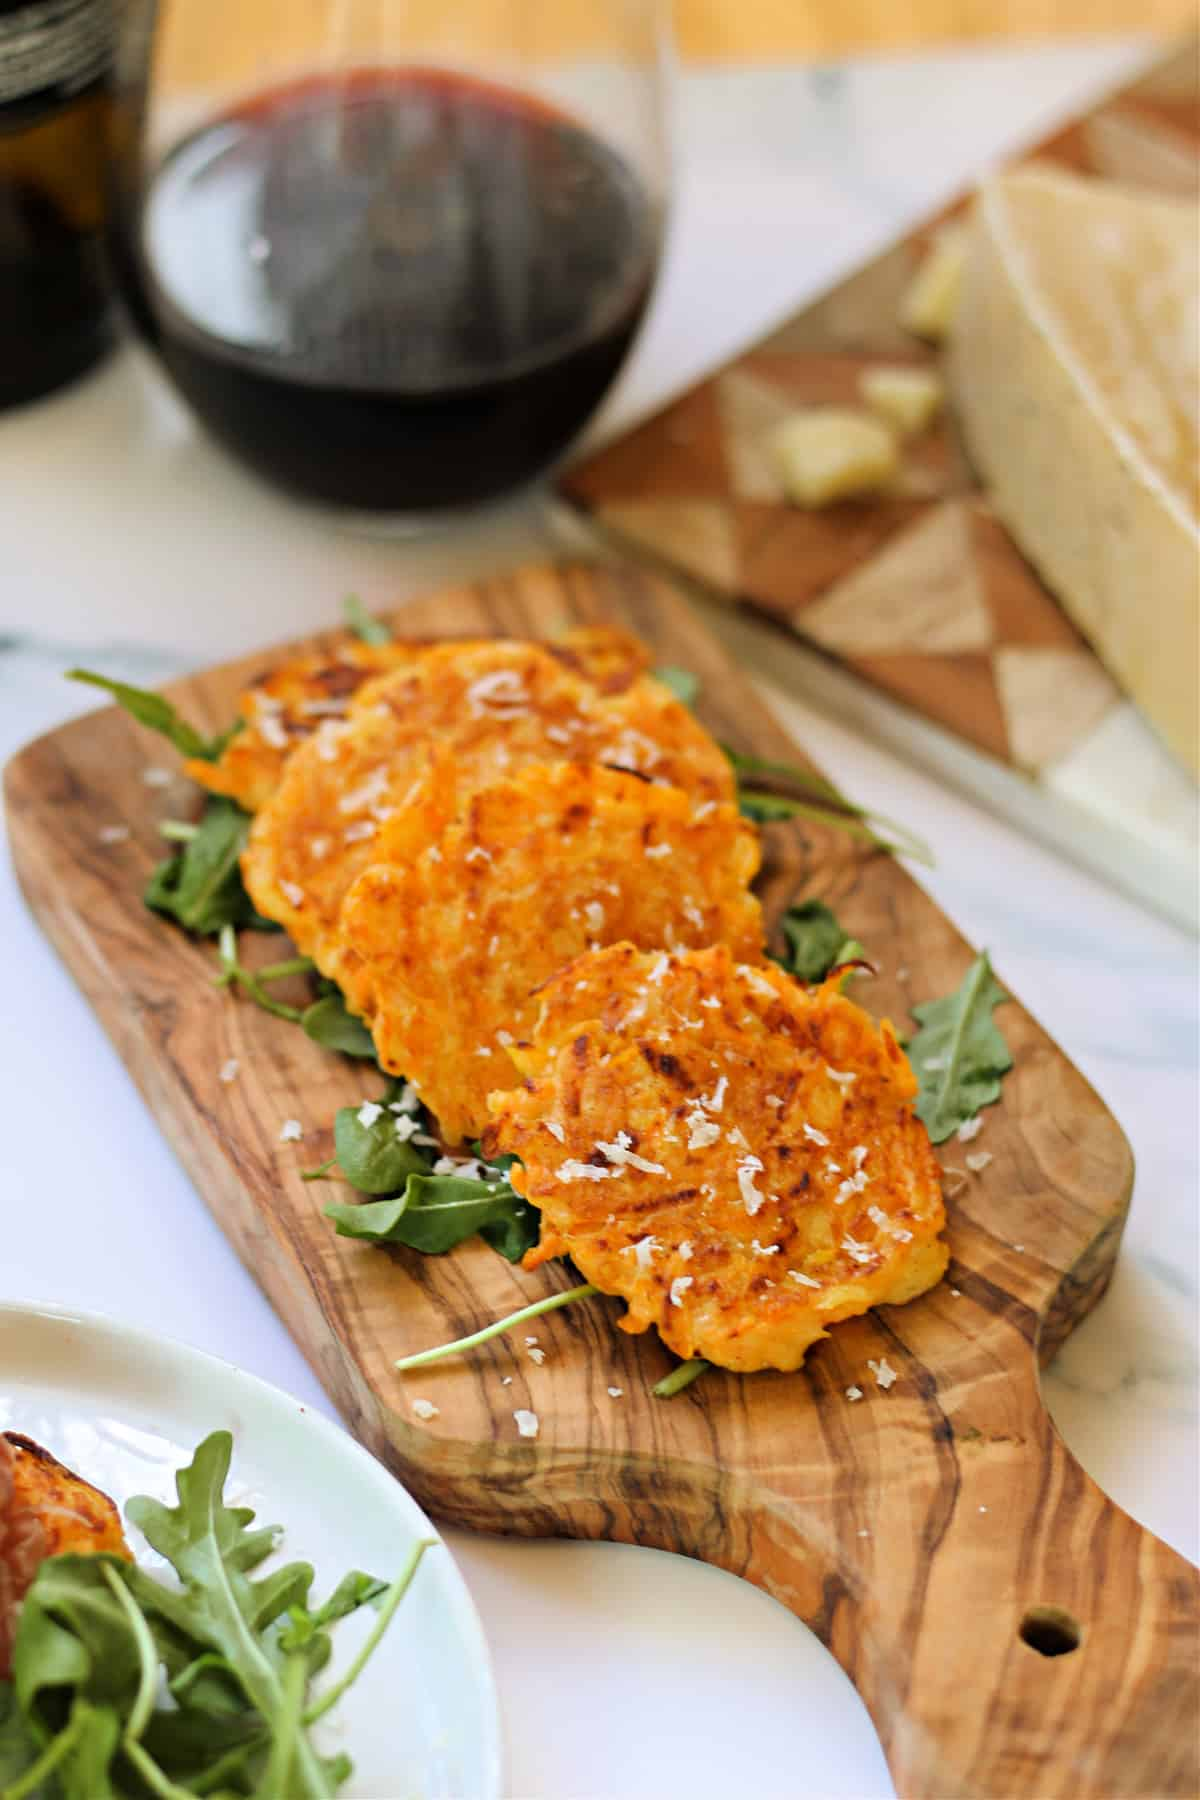 Butternut squash fritter appetizers on a small wood board.